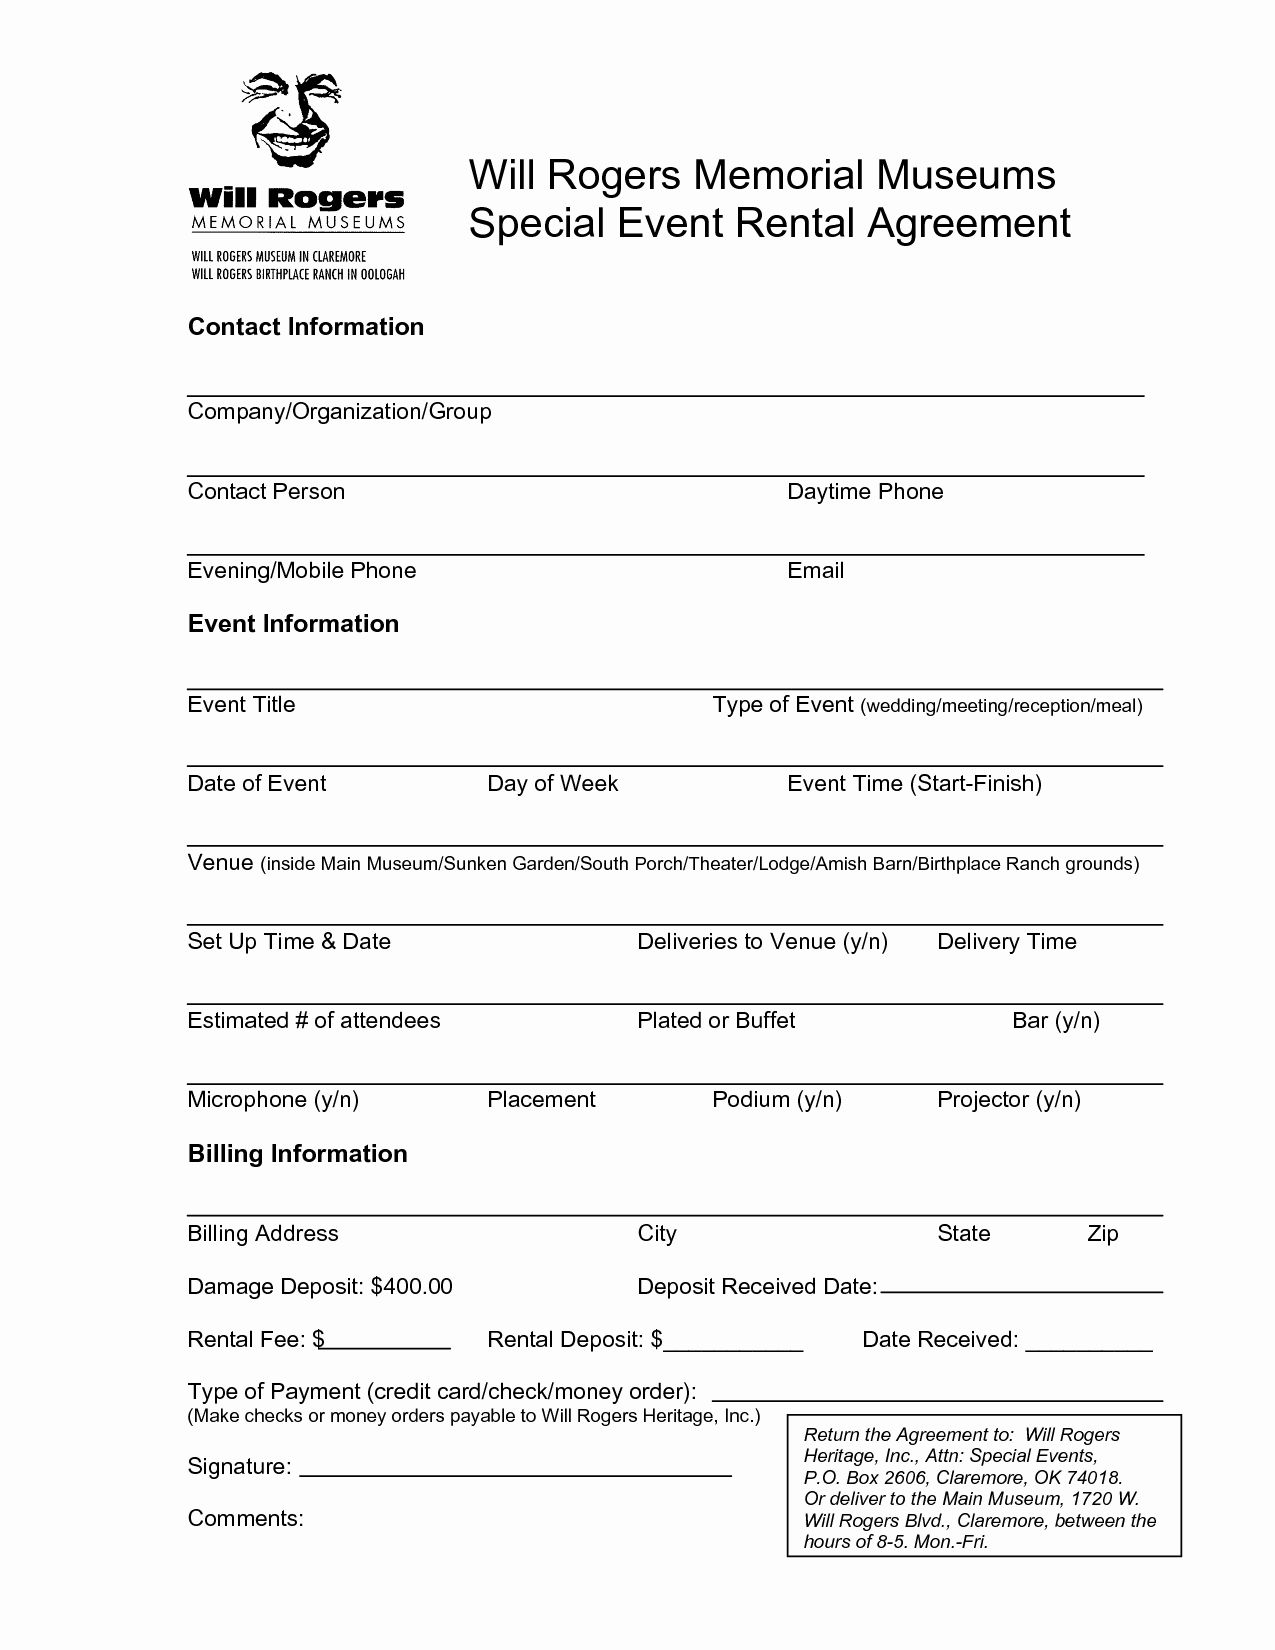 Venue Rental Agreement Template New Best S Of Venue Rental Contract Template Real